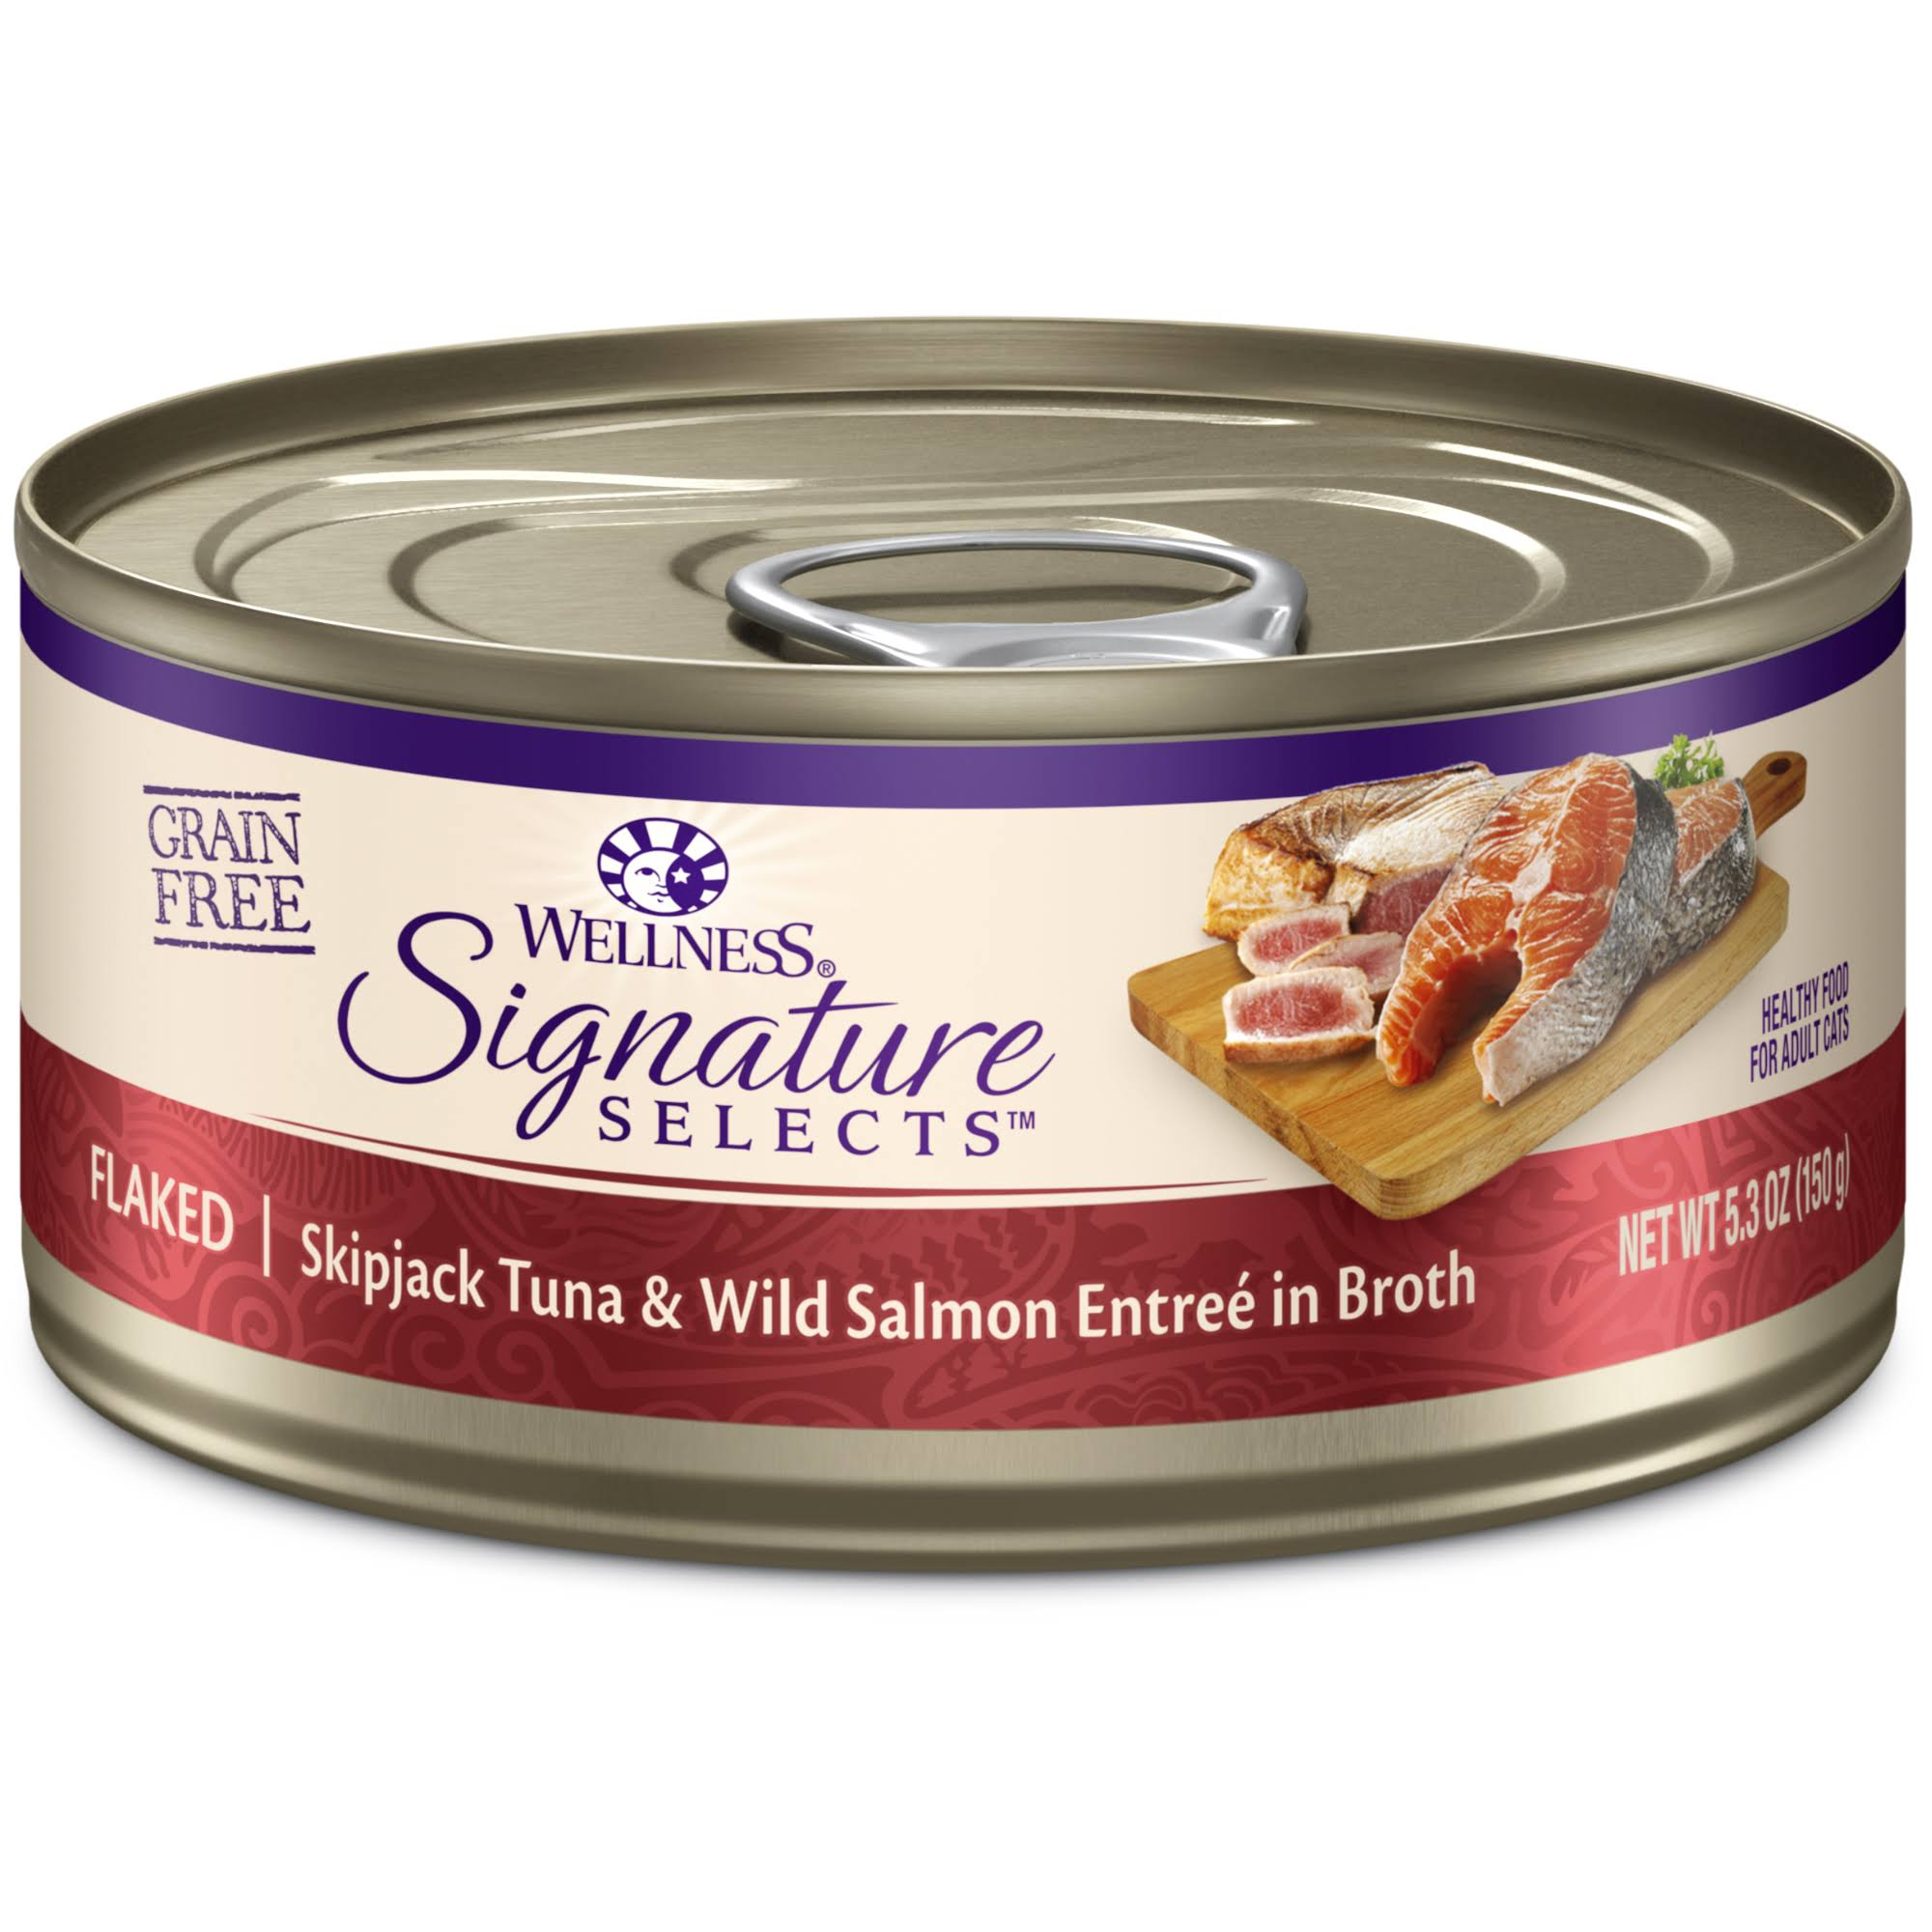 Wellness Signature Selects Grain Flaked Skipjack Tuna with Wild Salmon Entree Canned Cat Food - 5.3oz